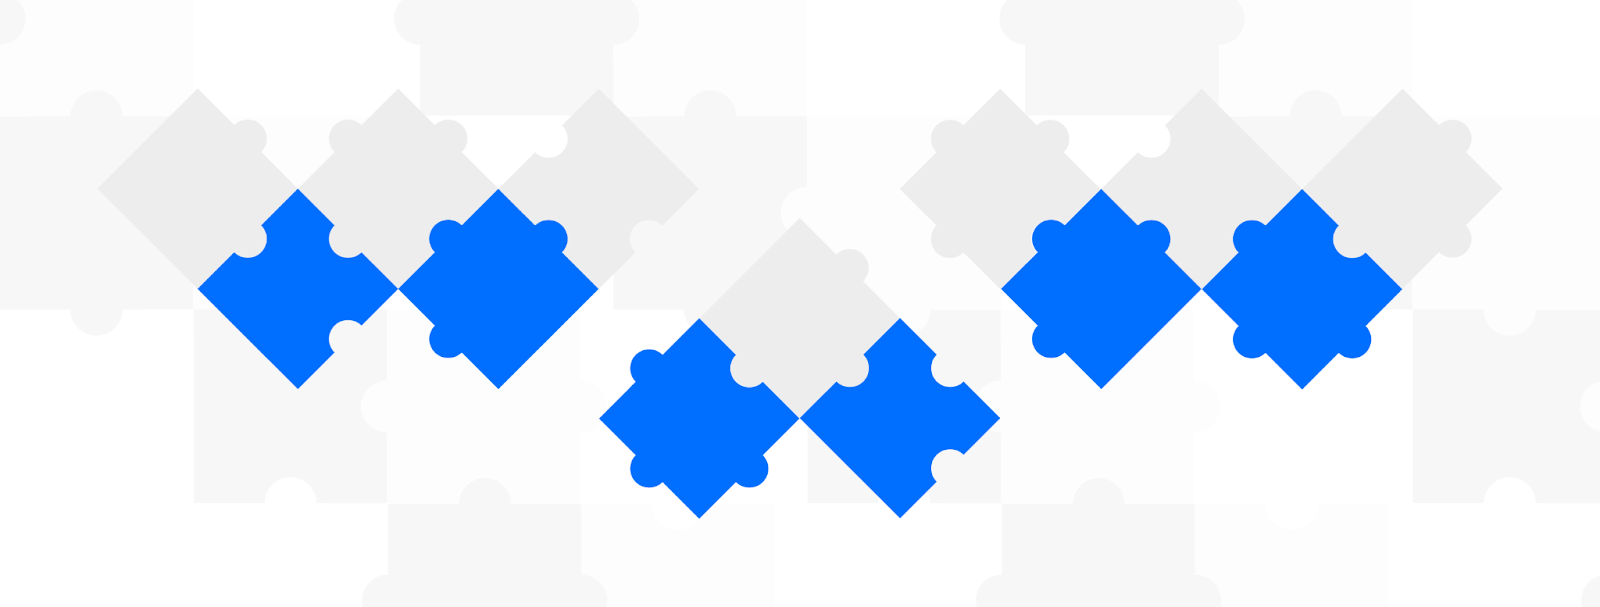 Puzzles representing composable commerce